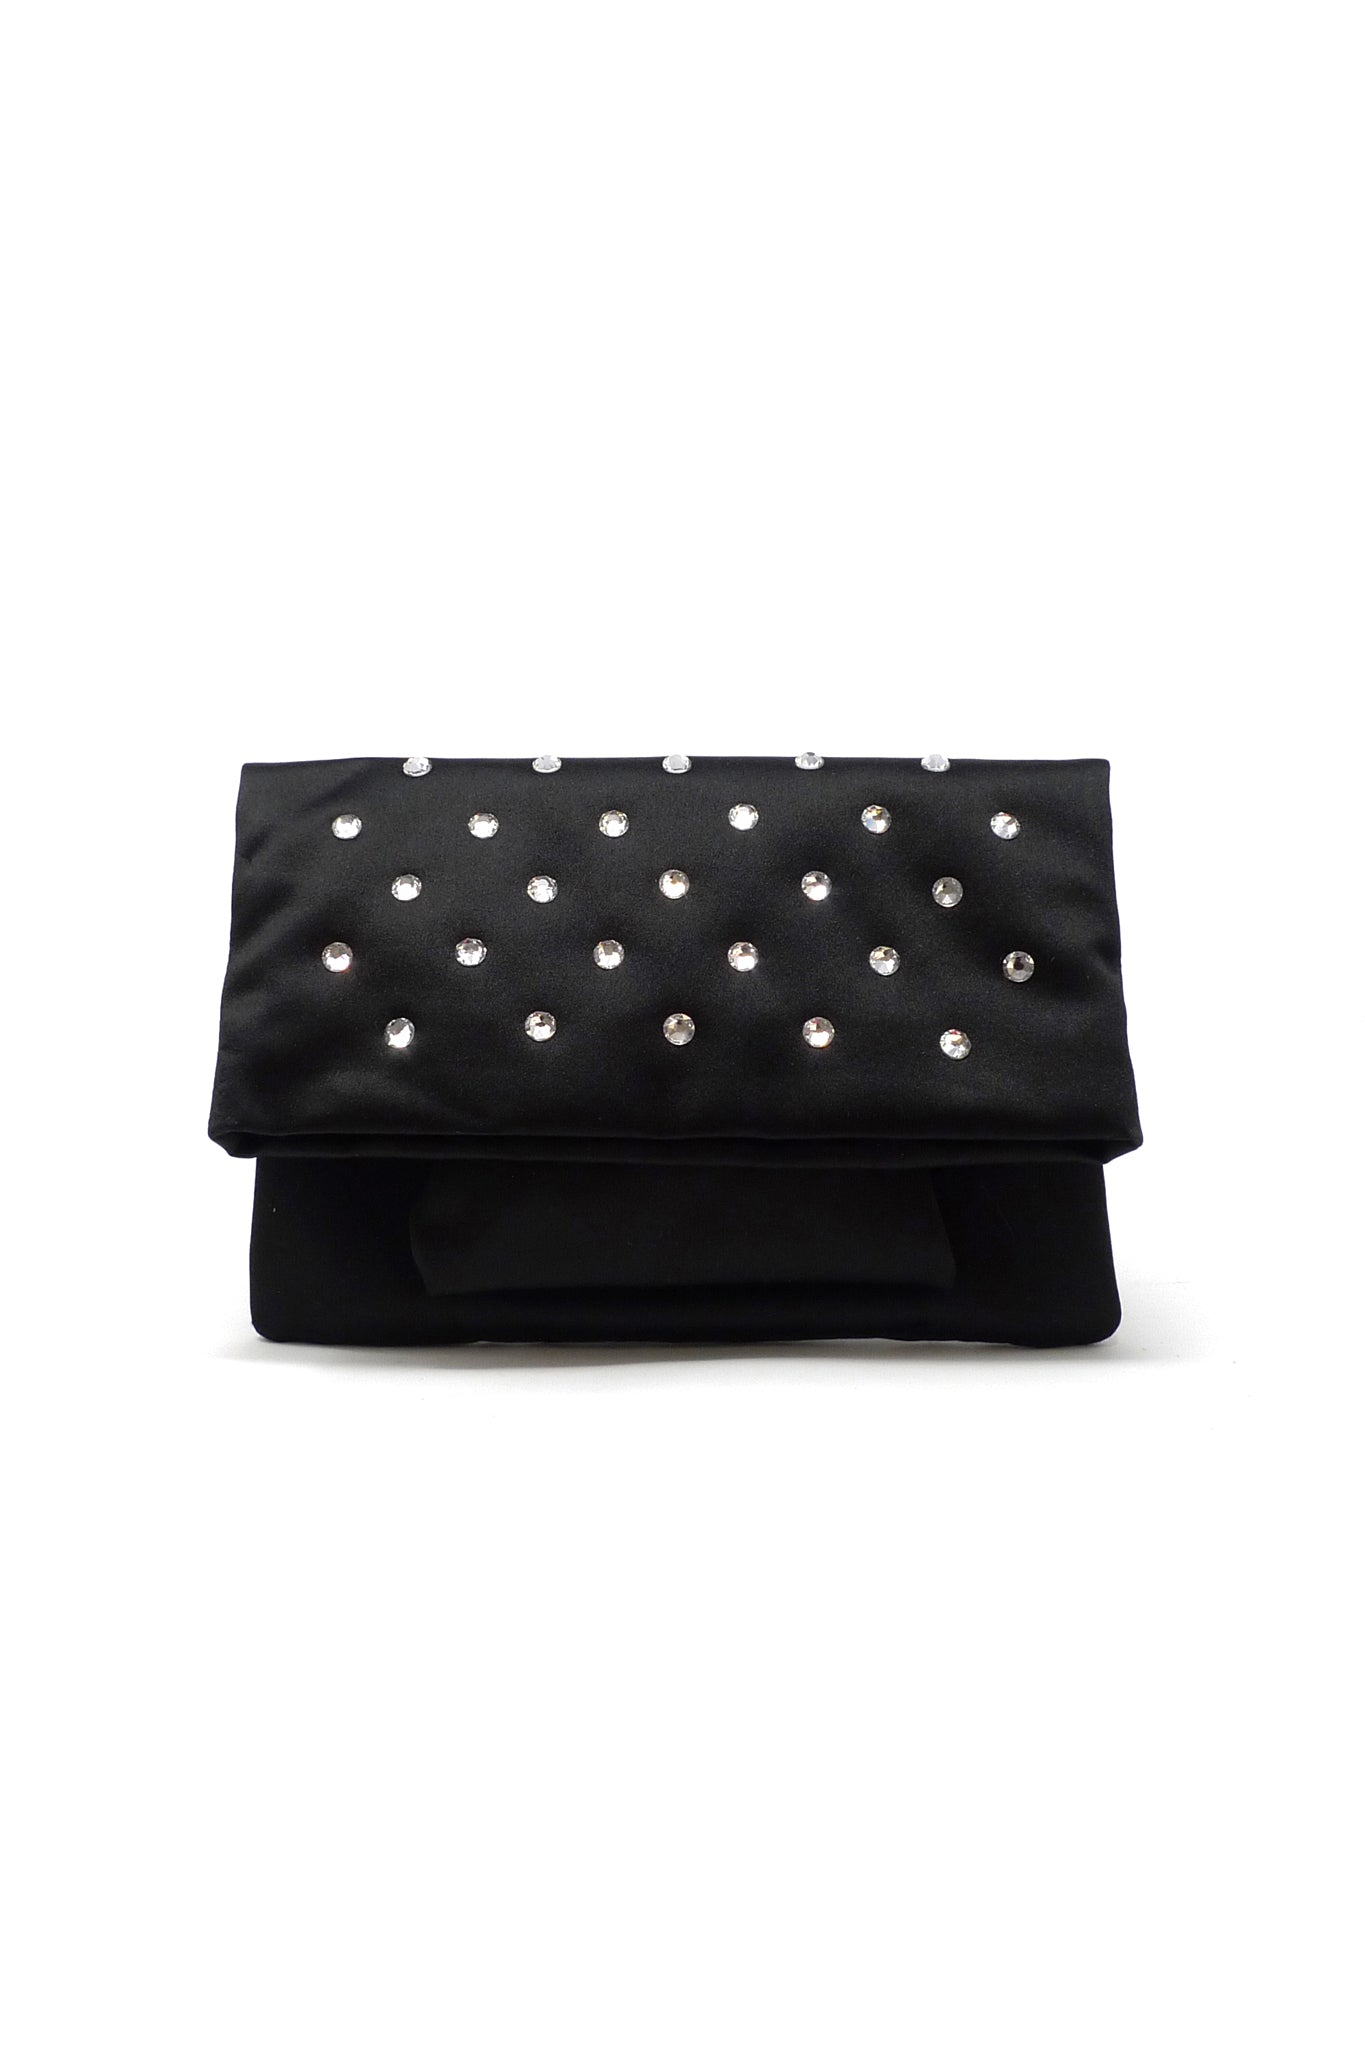 Aperitivo Clutch in Black Satin with Swarovski Studded Crystals